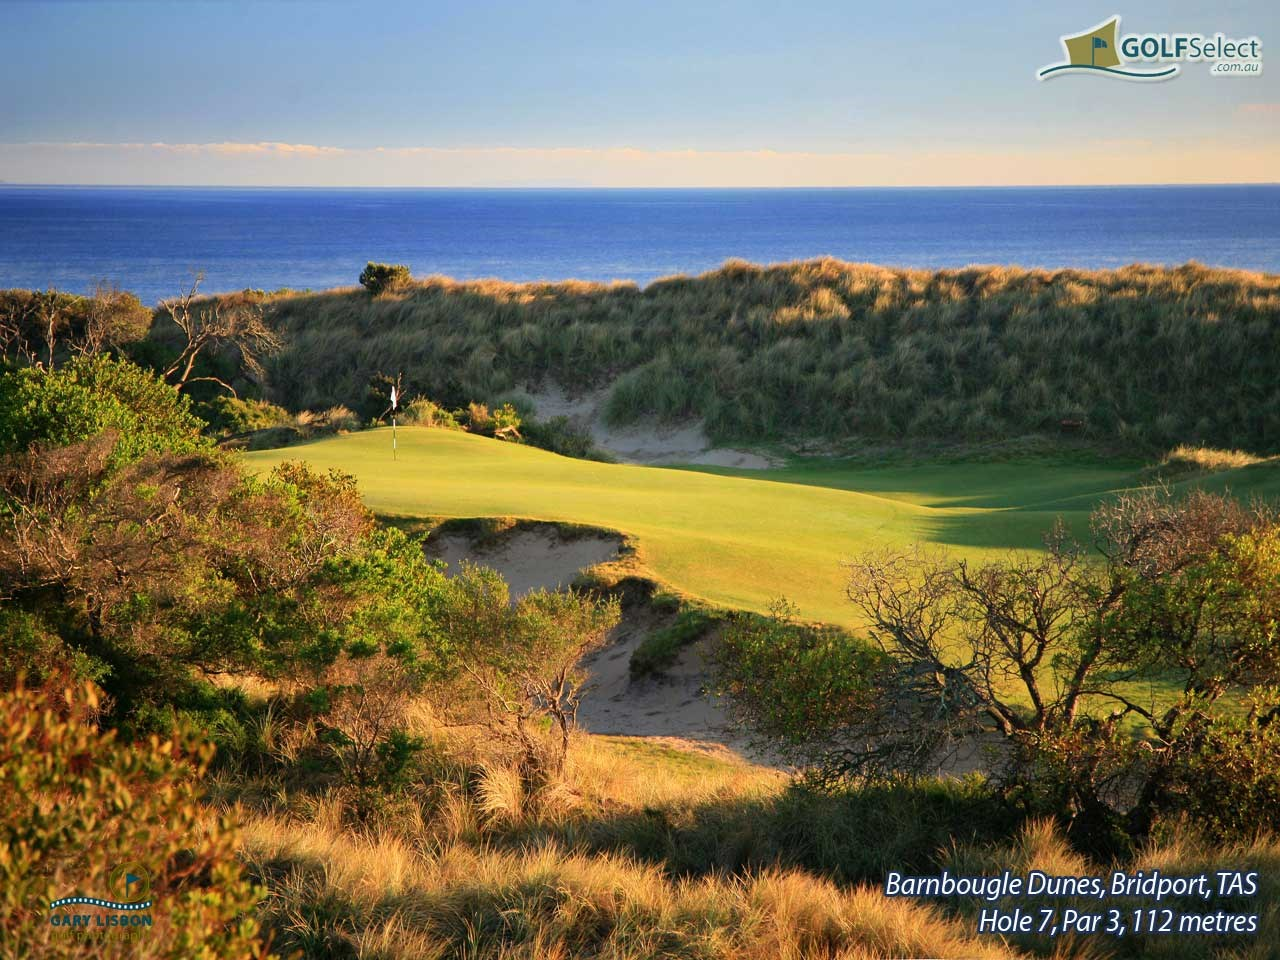 Barnbougle Dunes Golf Links Hole 7, Par 3, 112 metres